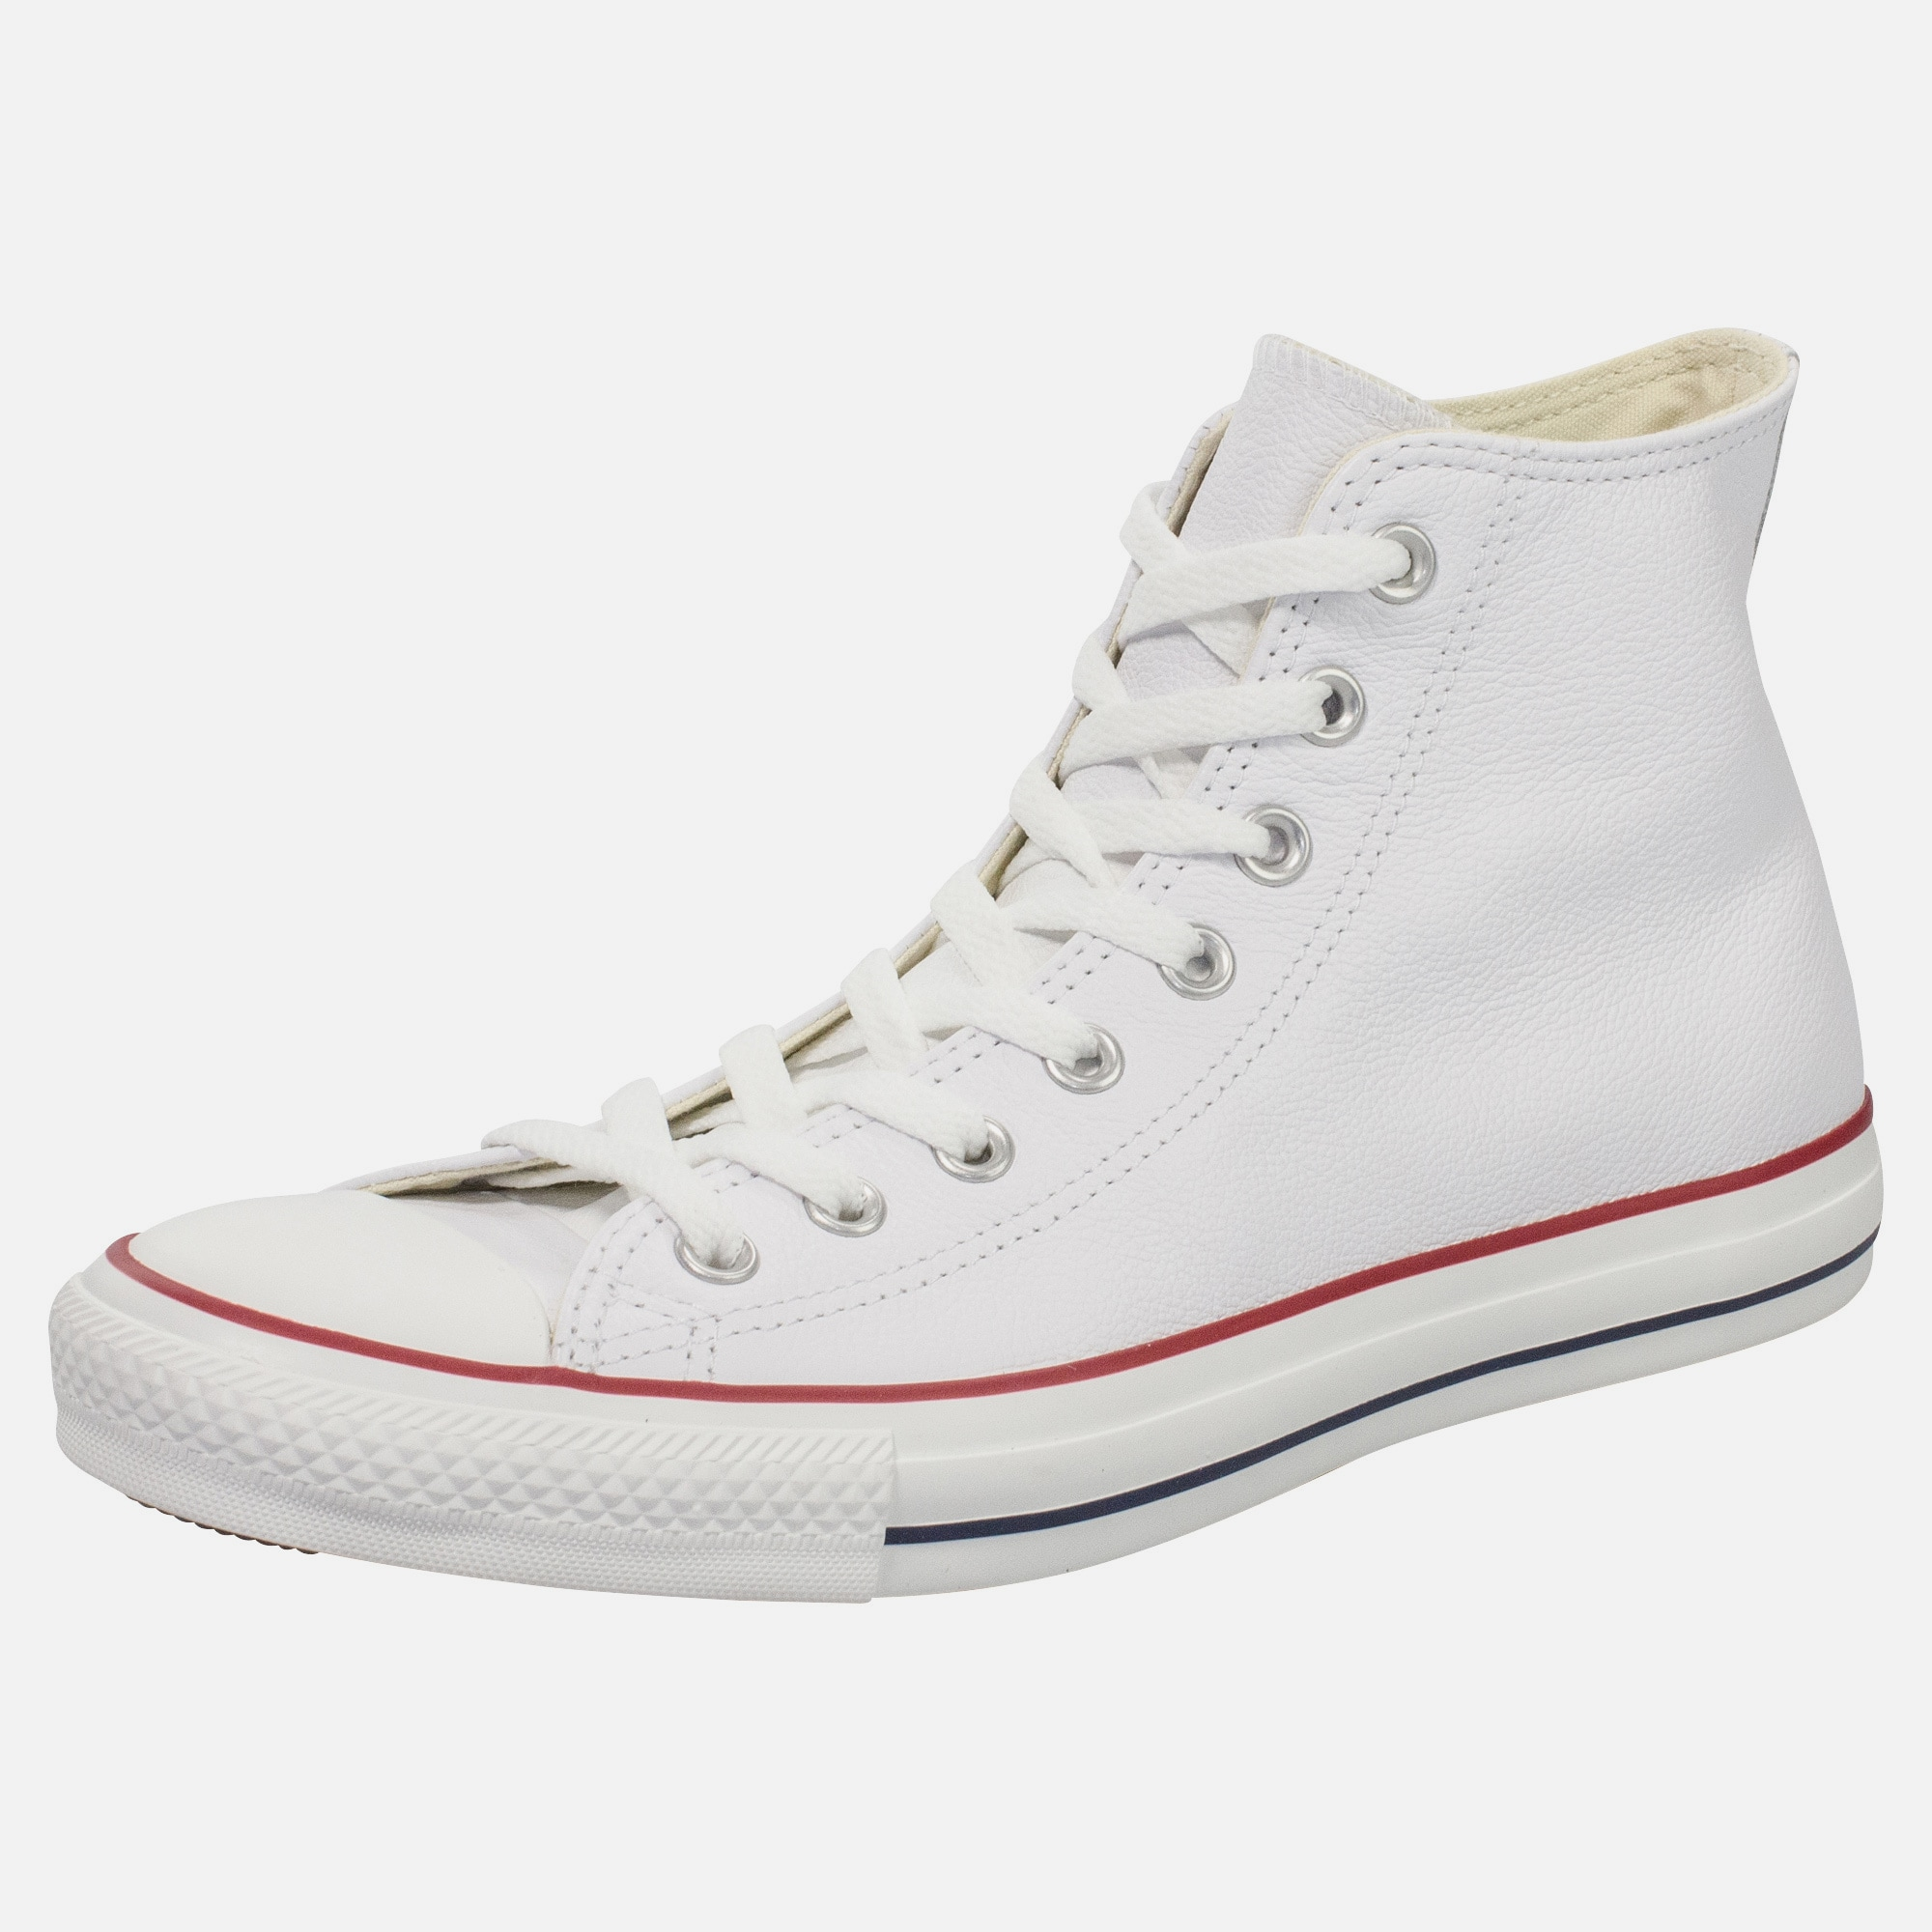 converse chuck taylor all star high leather sneaker in. Black Bedroom Furniture Sets. Home Design Ideas